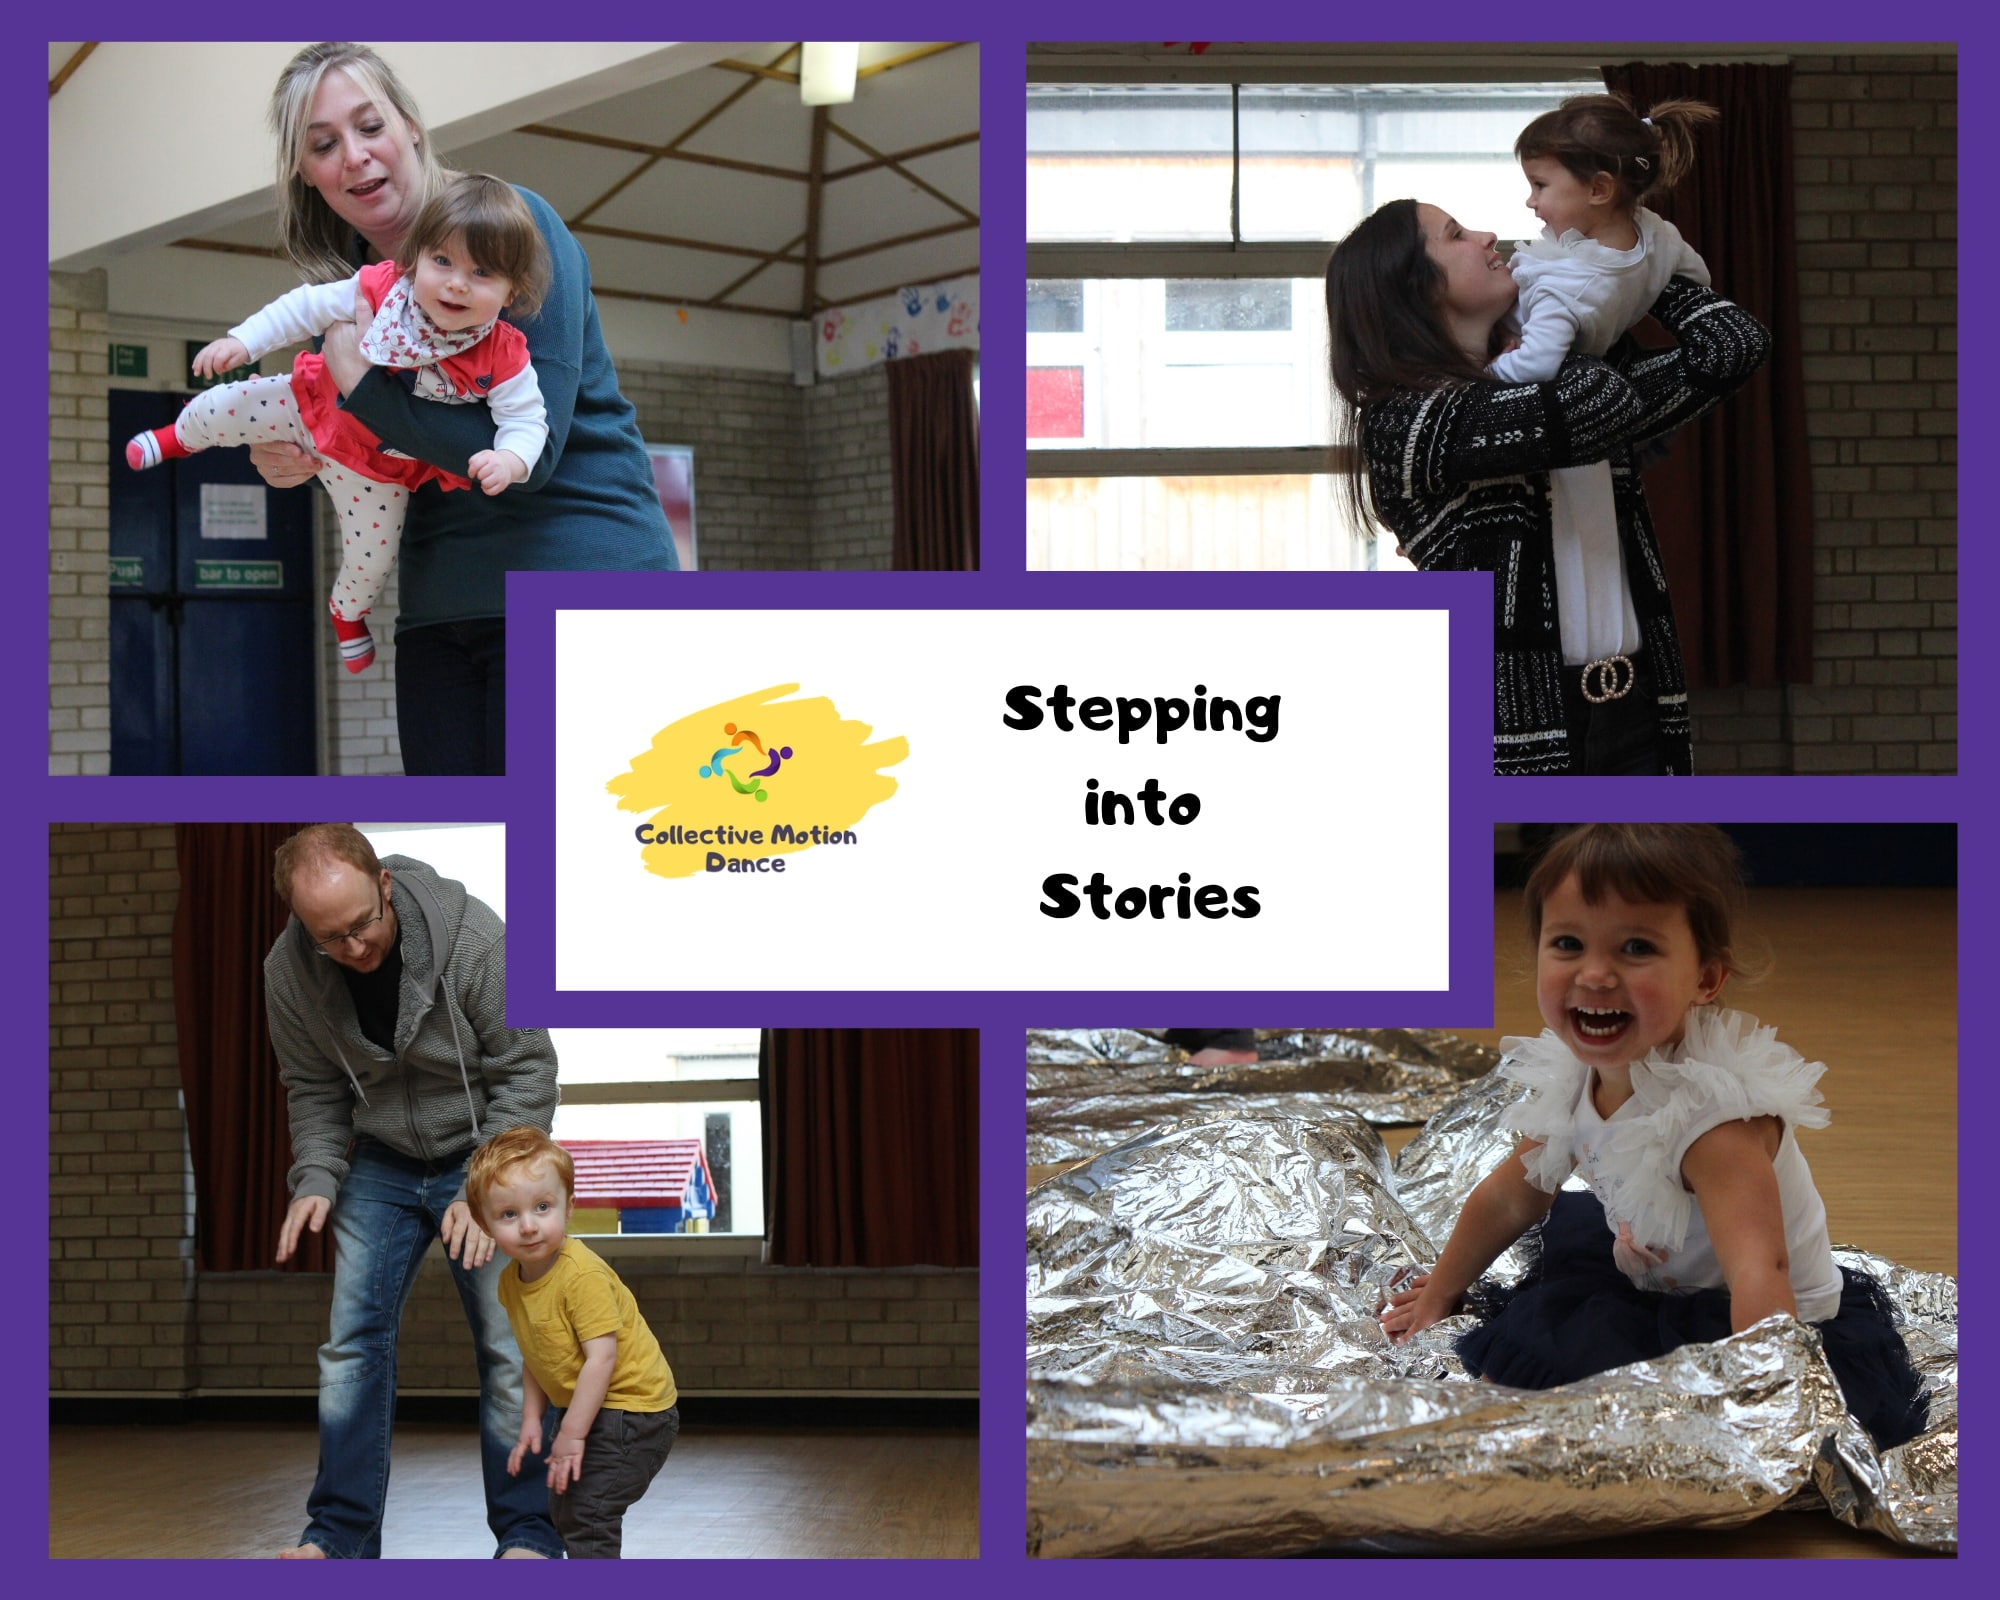 Stepping into Stories; dance and storytelling classes for toddlers, preschoolers and their parent/carer in Basingstoke. 4 photos of children dancing with their carers. Purple border.